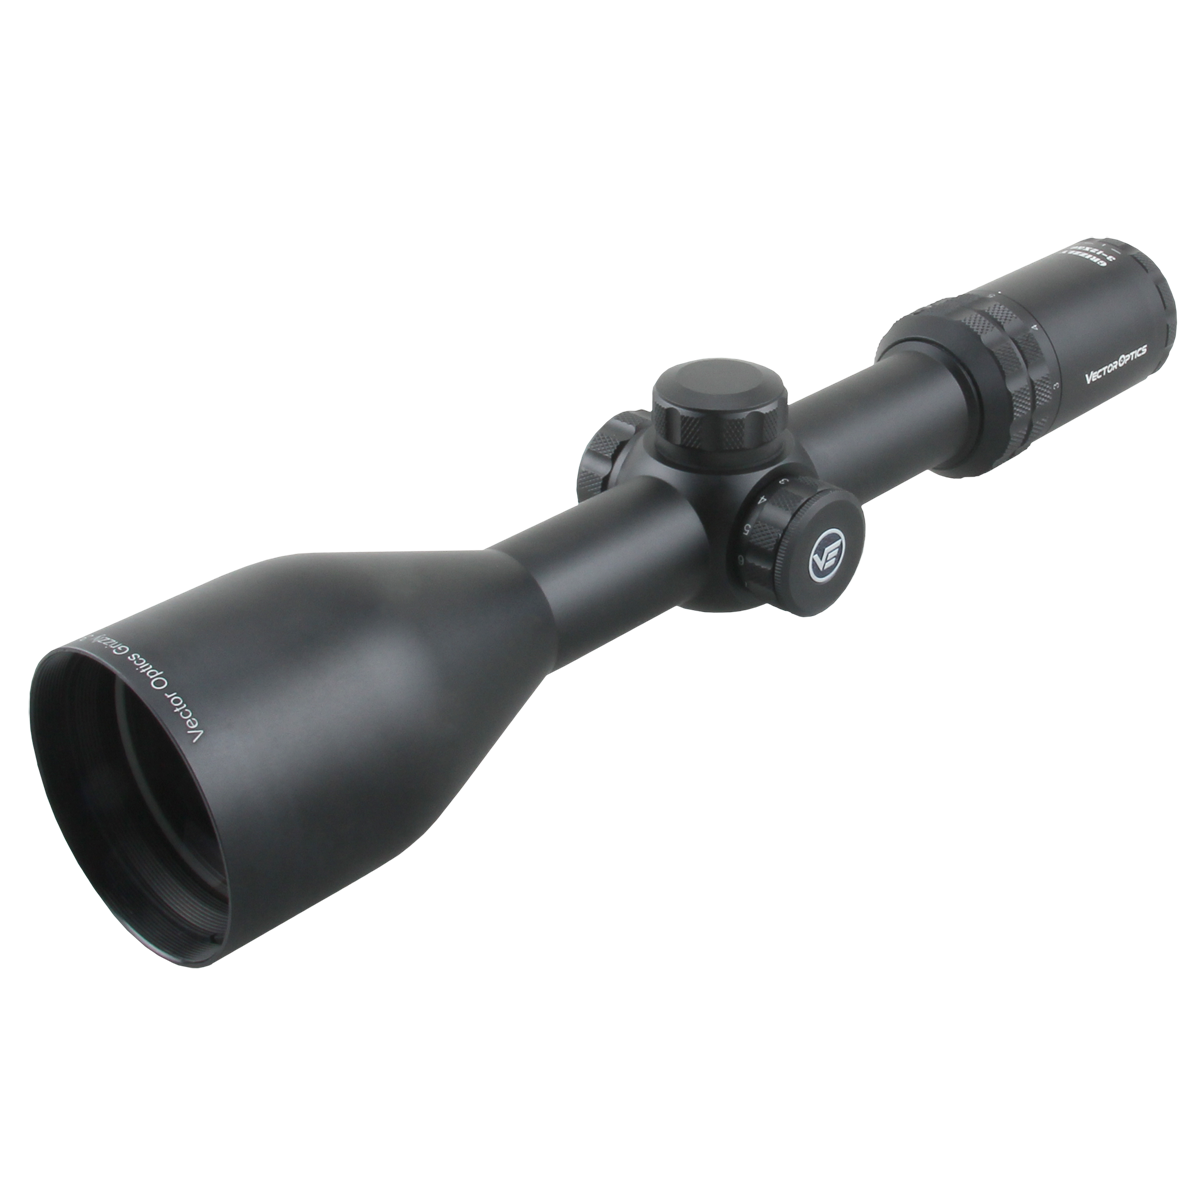 Grizzly 3-12x56E SFP Riflescope 2021 Update